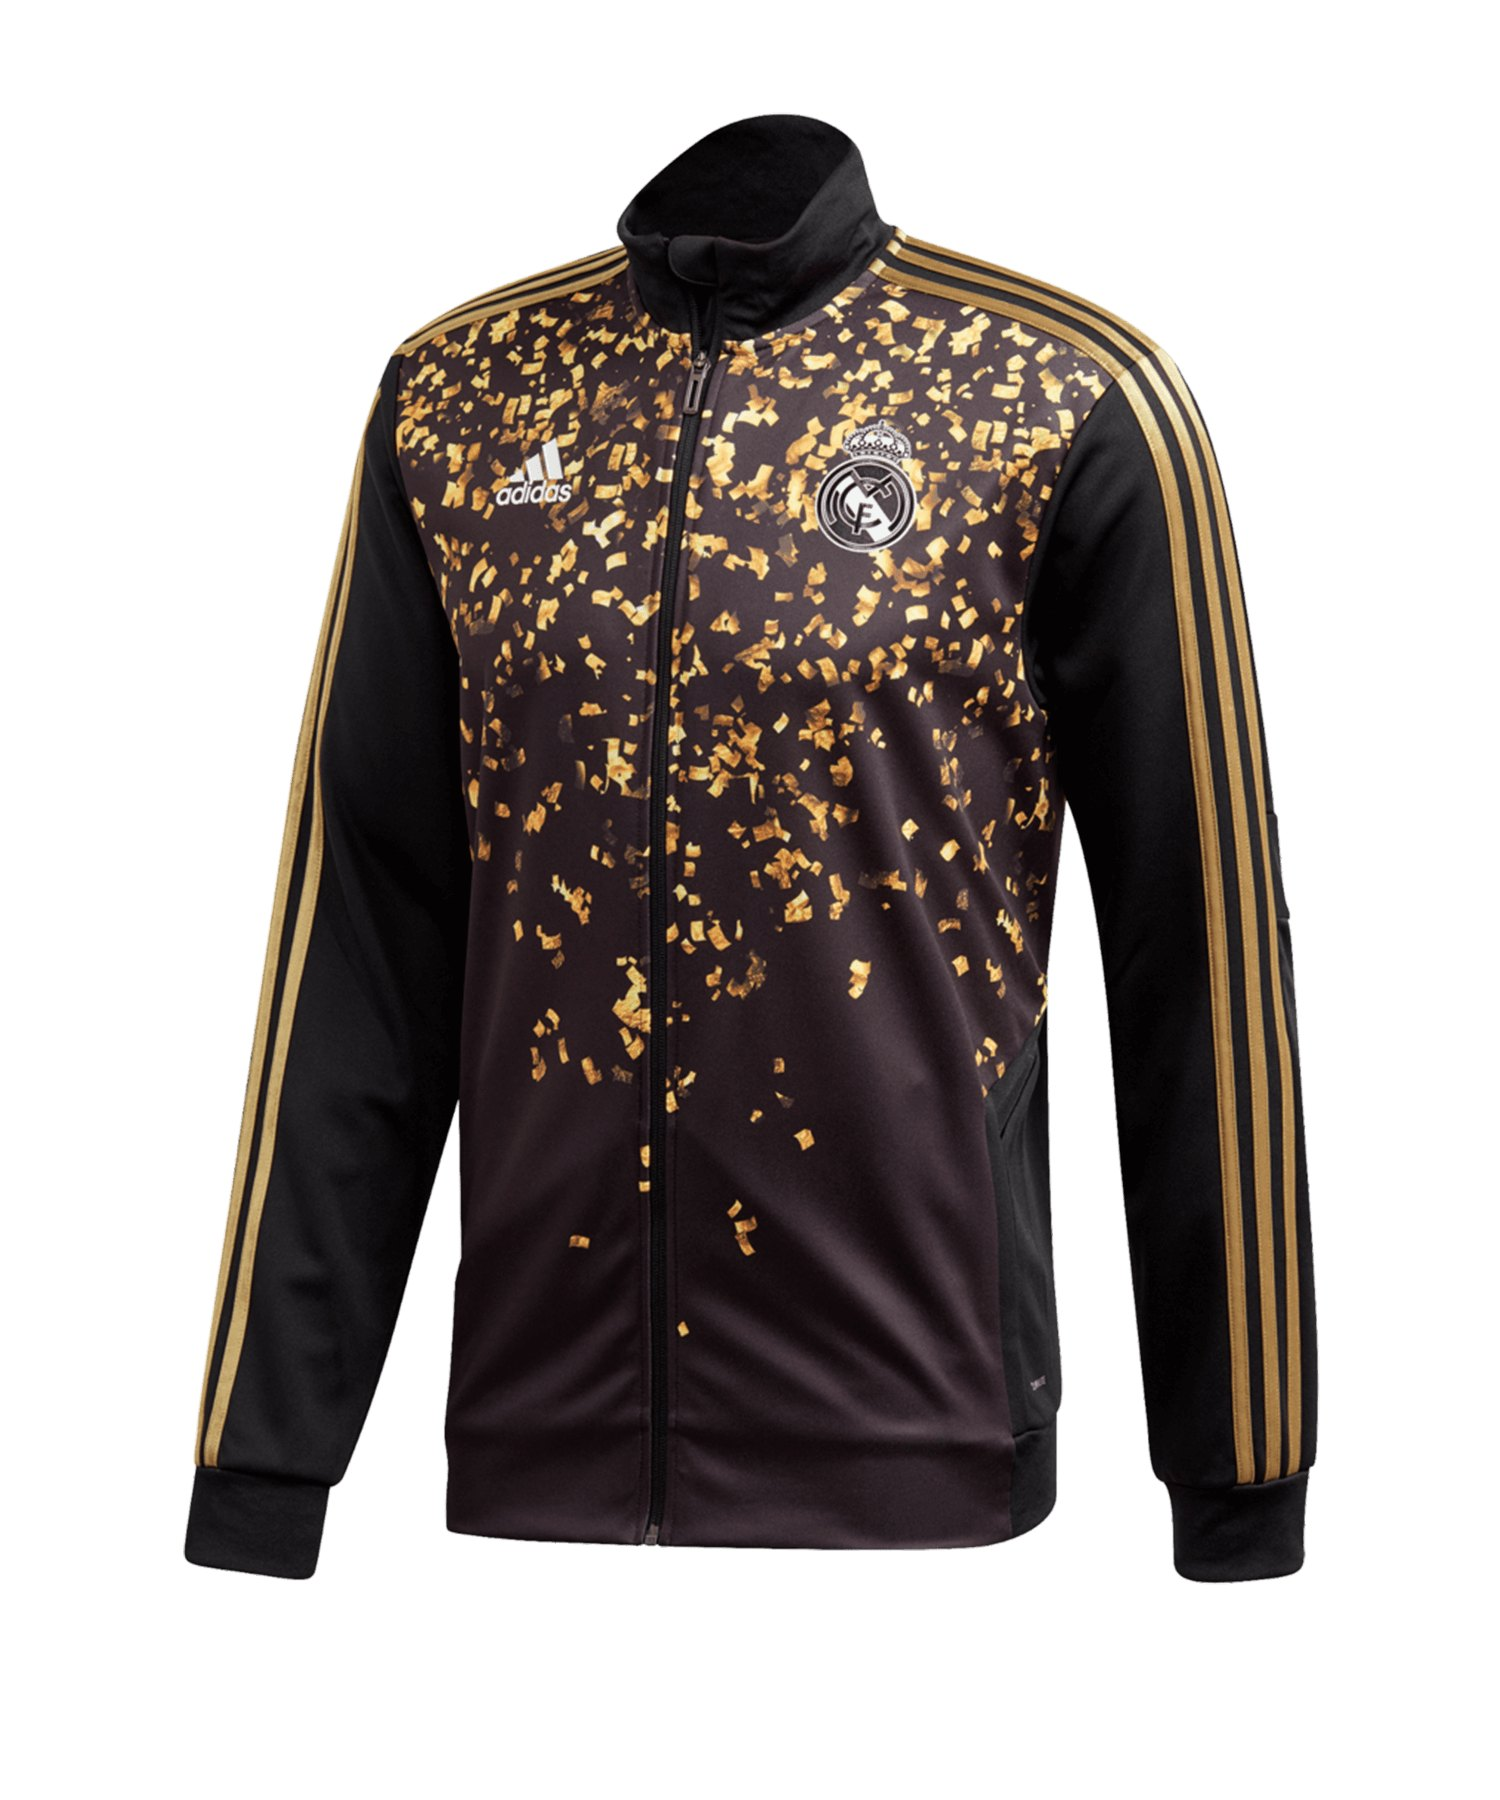 adidas Real Madrid EA Trainingsjacke Schwarz Gold - Schwarz